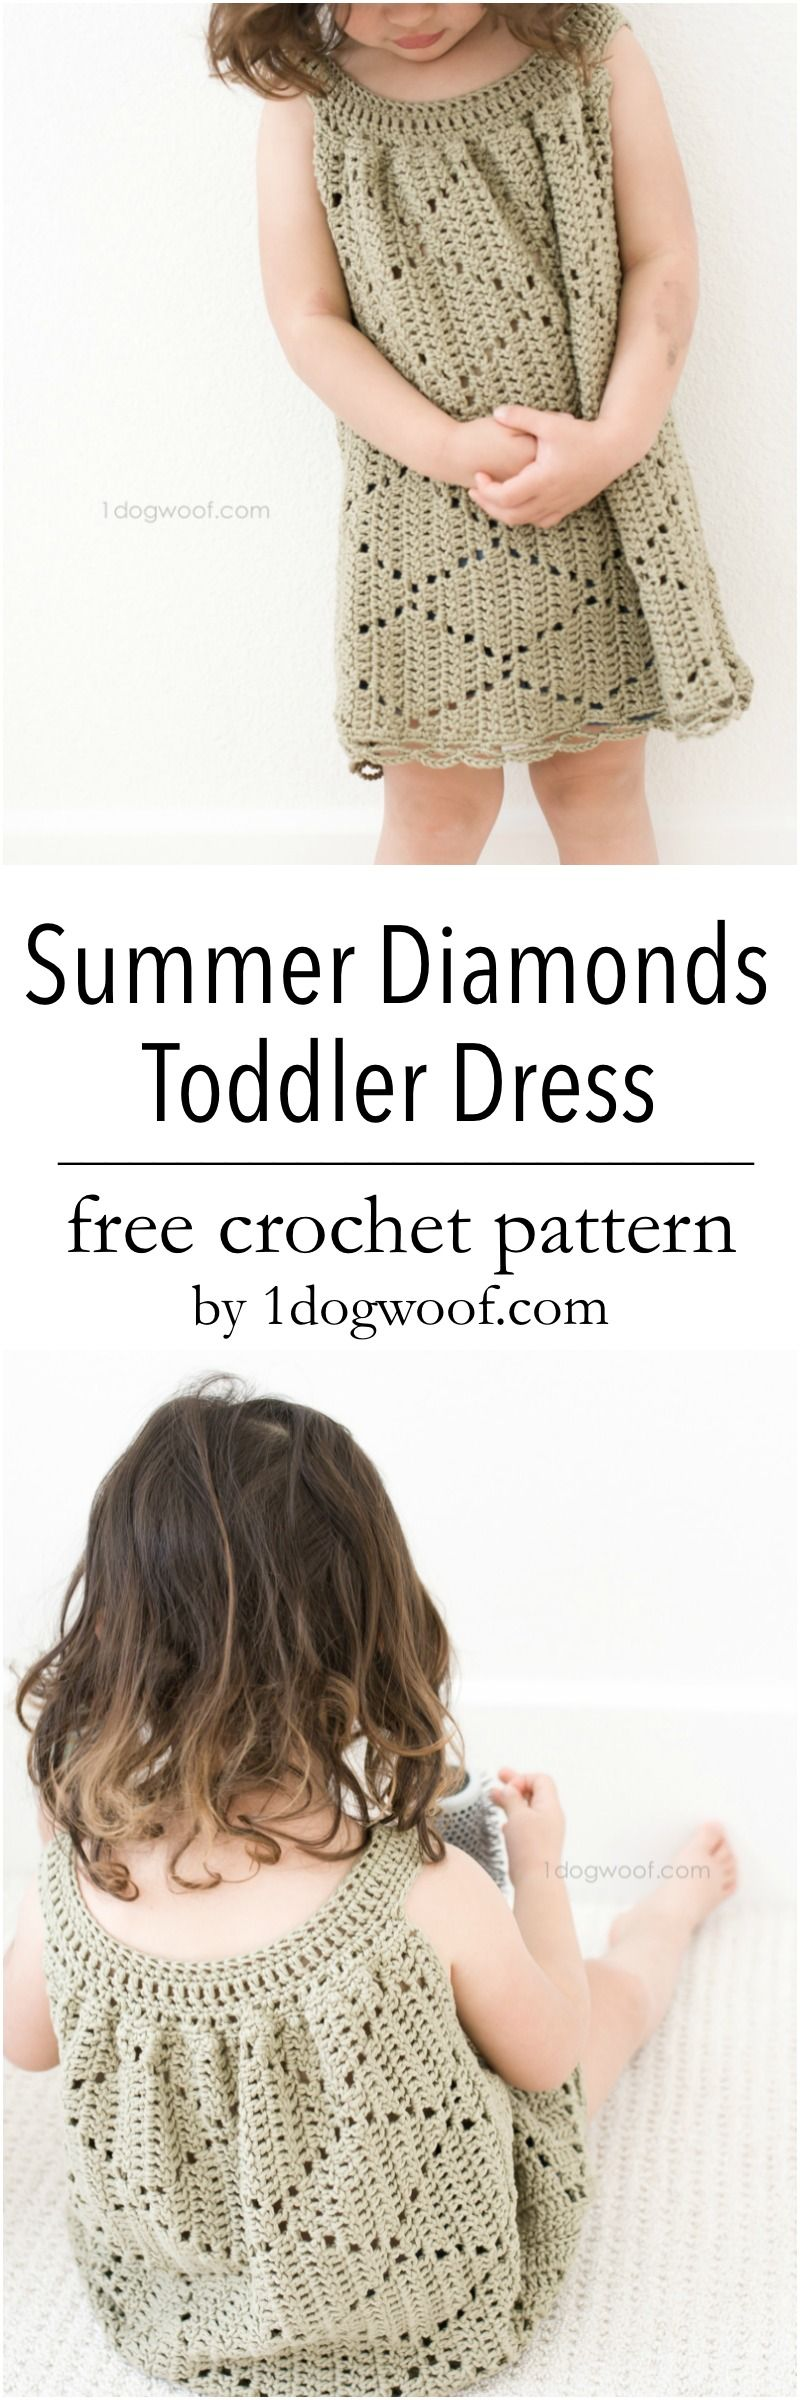 Summer Diamonds Toddler Dress | Tejido, Vestidos niña y Ganchillo